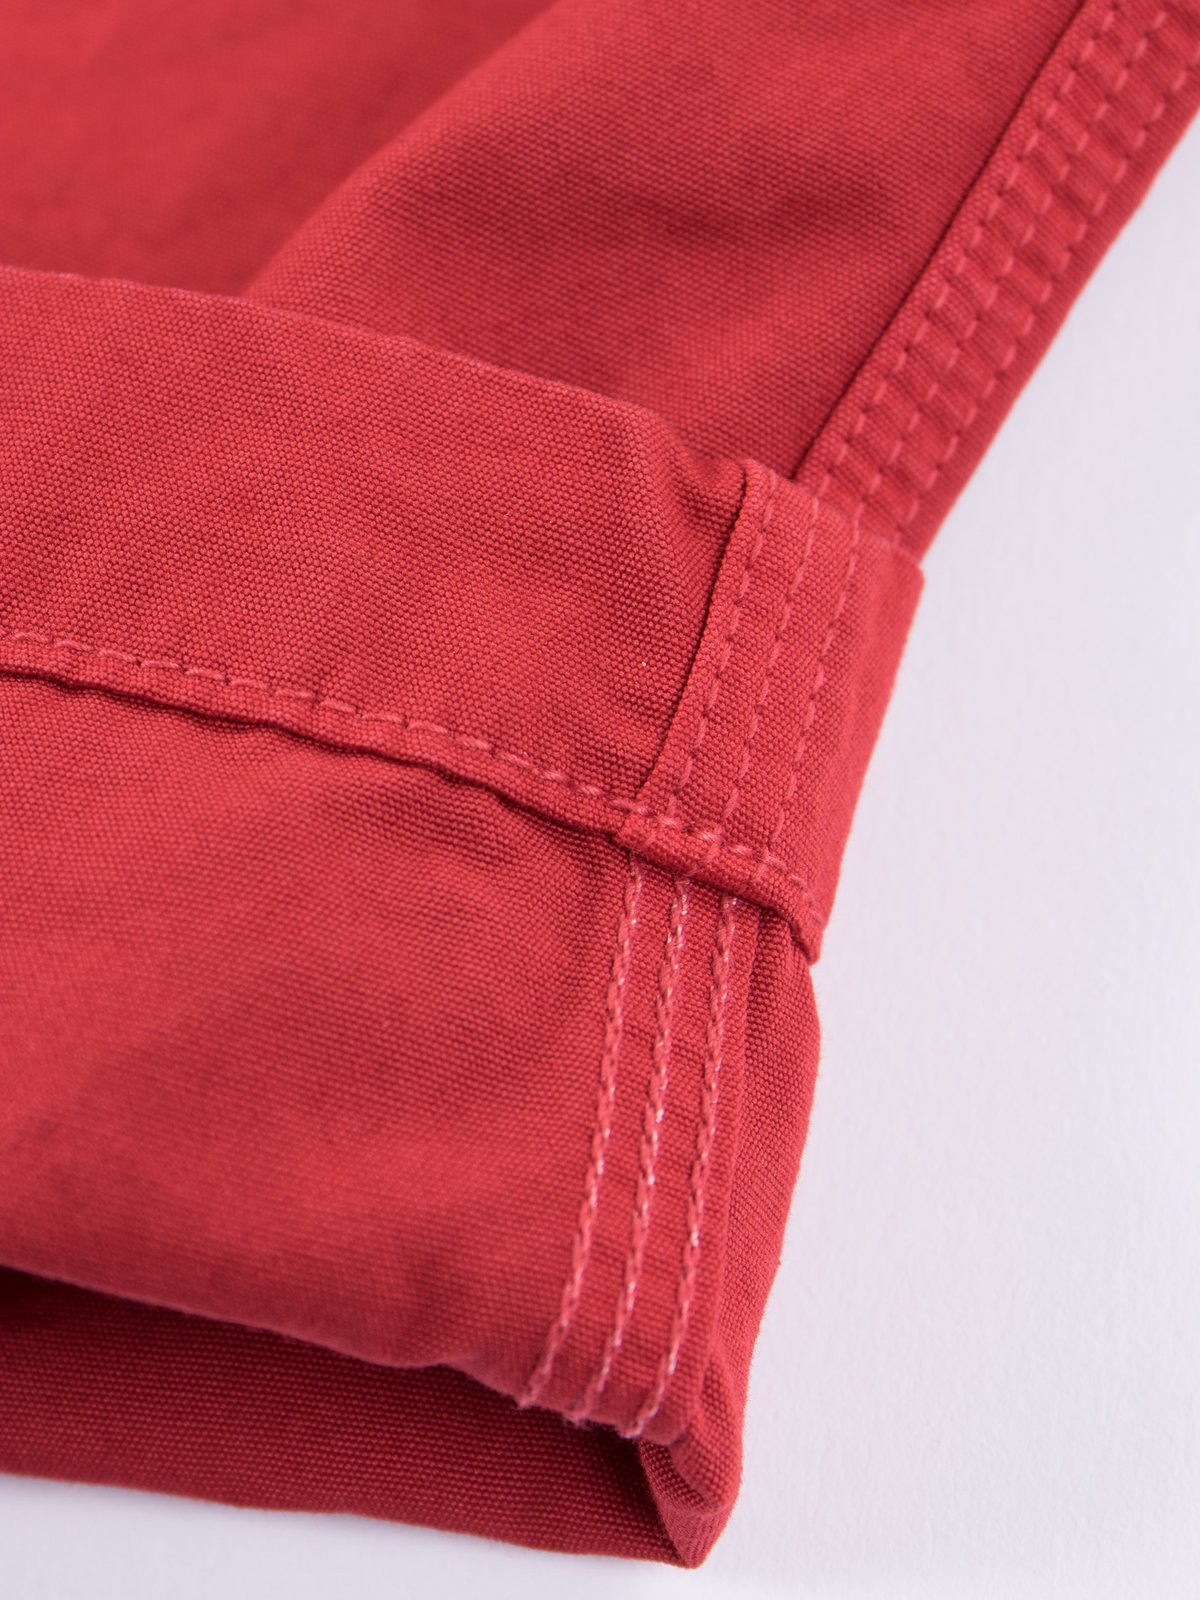 Red Overdyed Poplin Climbing Pant - Image 3